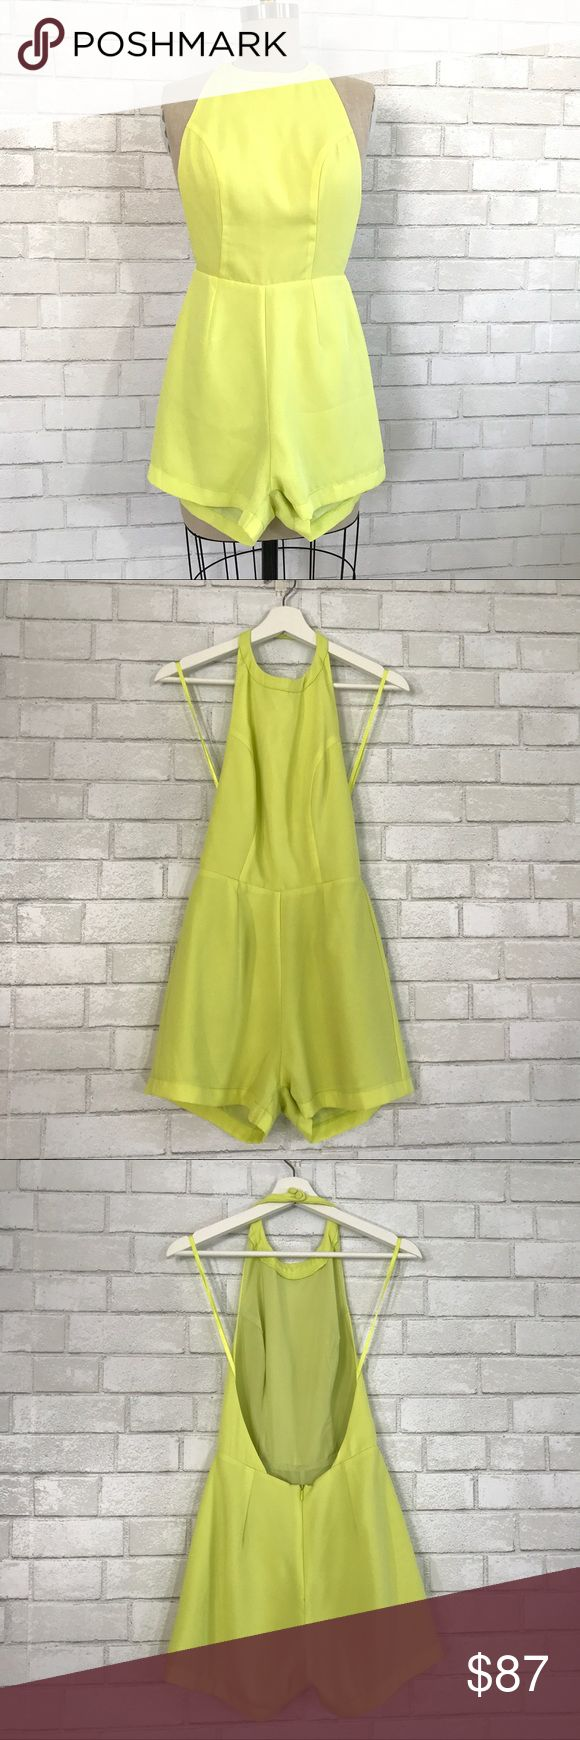 Lime green halter Romper NWOT Perfect summer Halter Romper in a lime green.   Size 6,  light poly blend fabric, full lining, invisible back zipper, halter button top. new no tag never worn, comes with e tea button. Retail $164 plus Tax.   Ⓜ️waist 26 Ⓜ️rise 12 Ⓜ️inseam 2.5 Ⓜ️Length 31  Ⓜ️ Torso 29  ✅Bundle and save  ✅🚭 🚫No Trading 🙅🏻 Poshmark rules only‼️ Mika & Gala  Pants Jumpsuits & Rompers